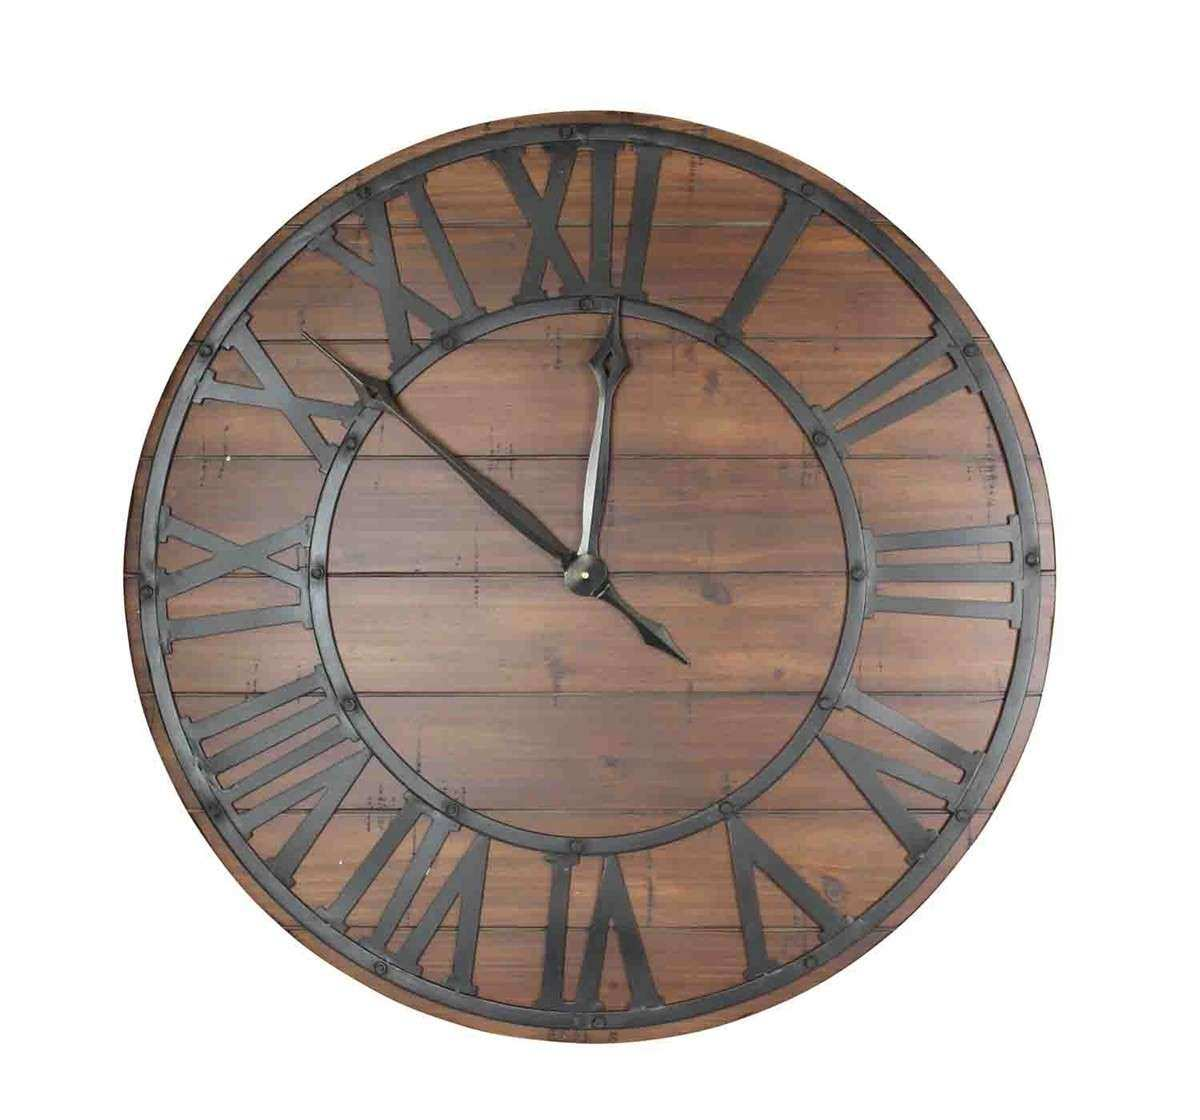 Wall Clocks Decor Inspirational Decorative Wood And Metal Wall Clock  Caravana